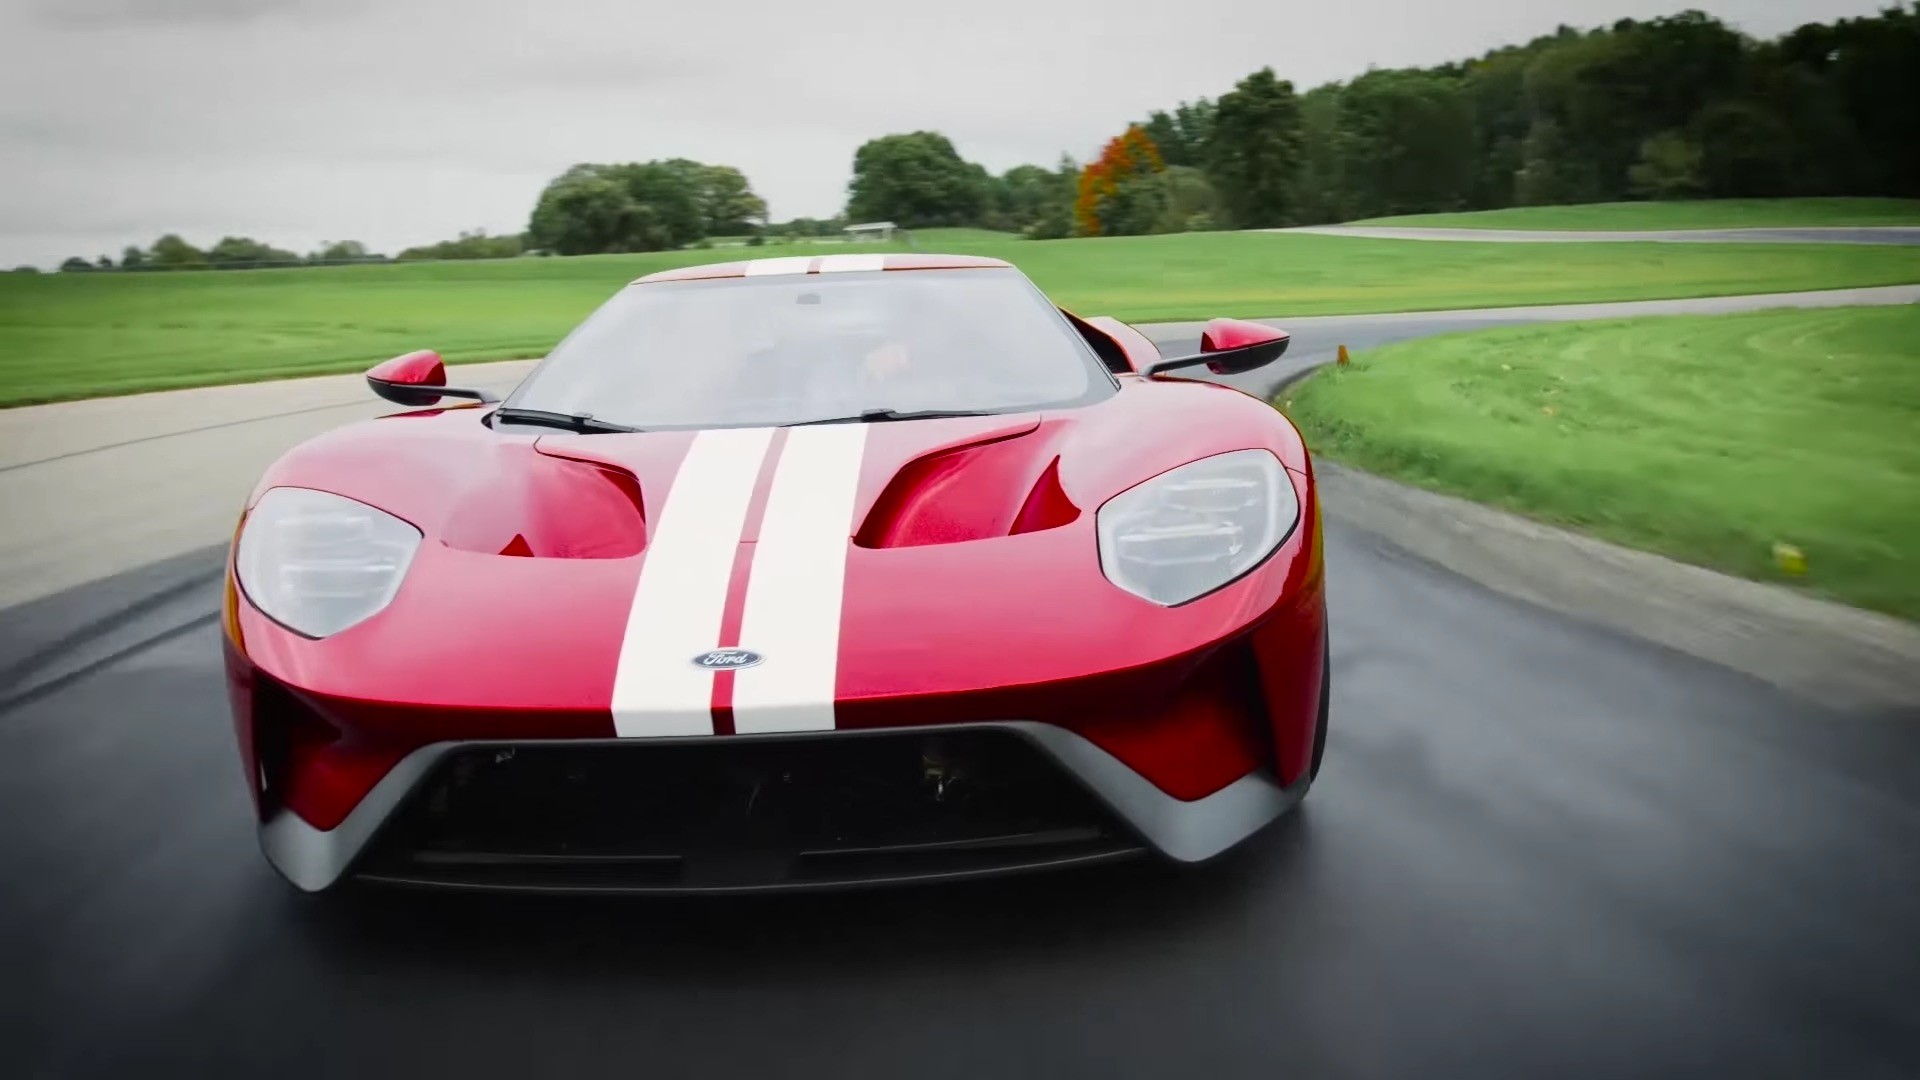 2017 ford gt digital instrument cluster changes style according to